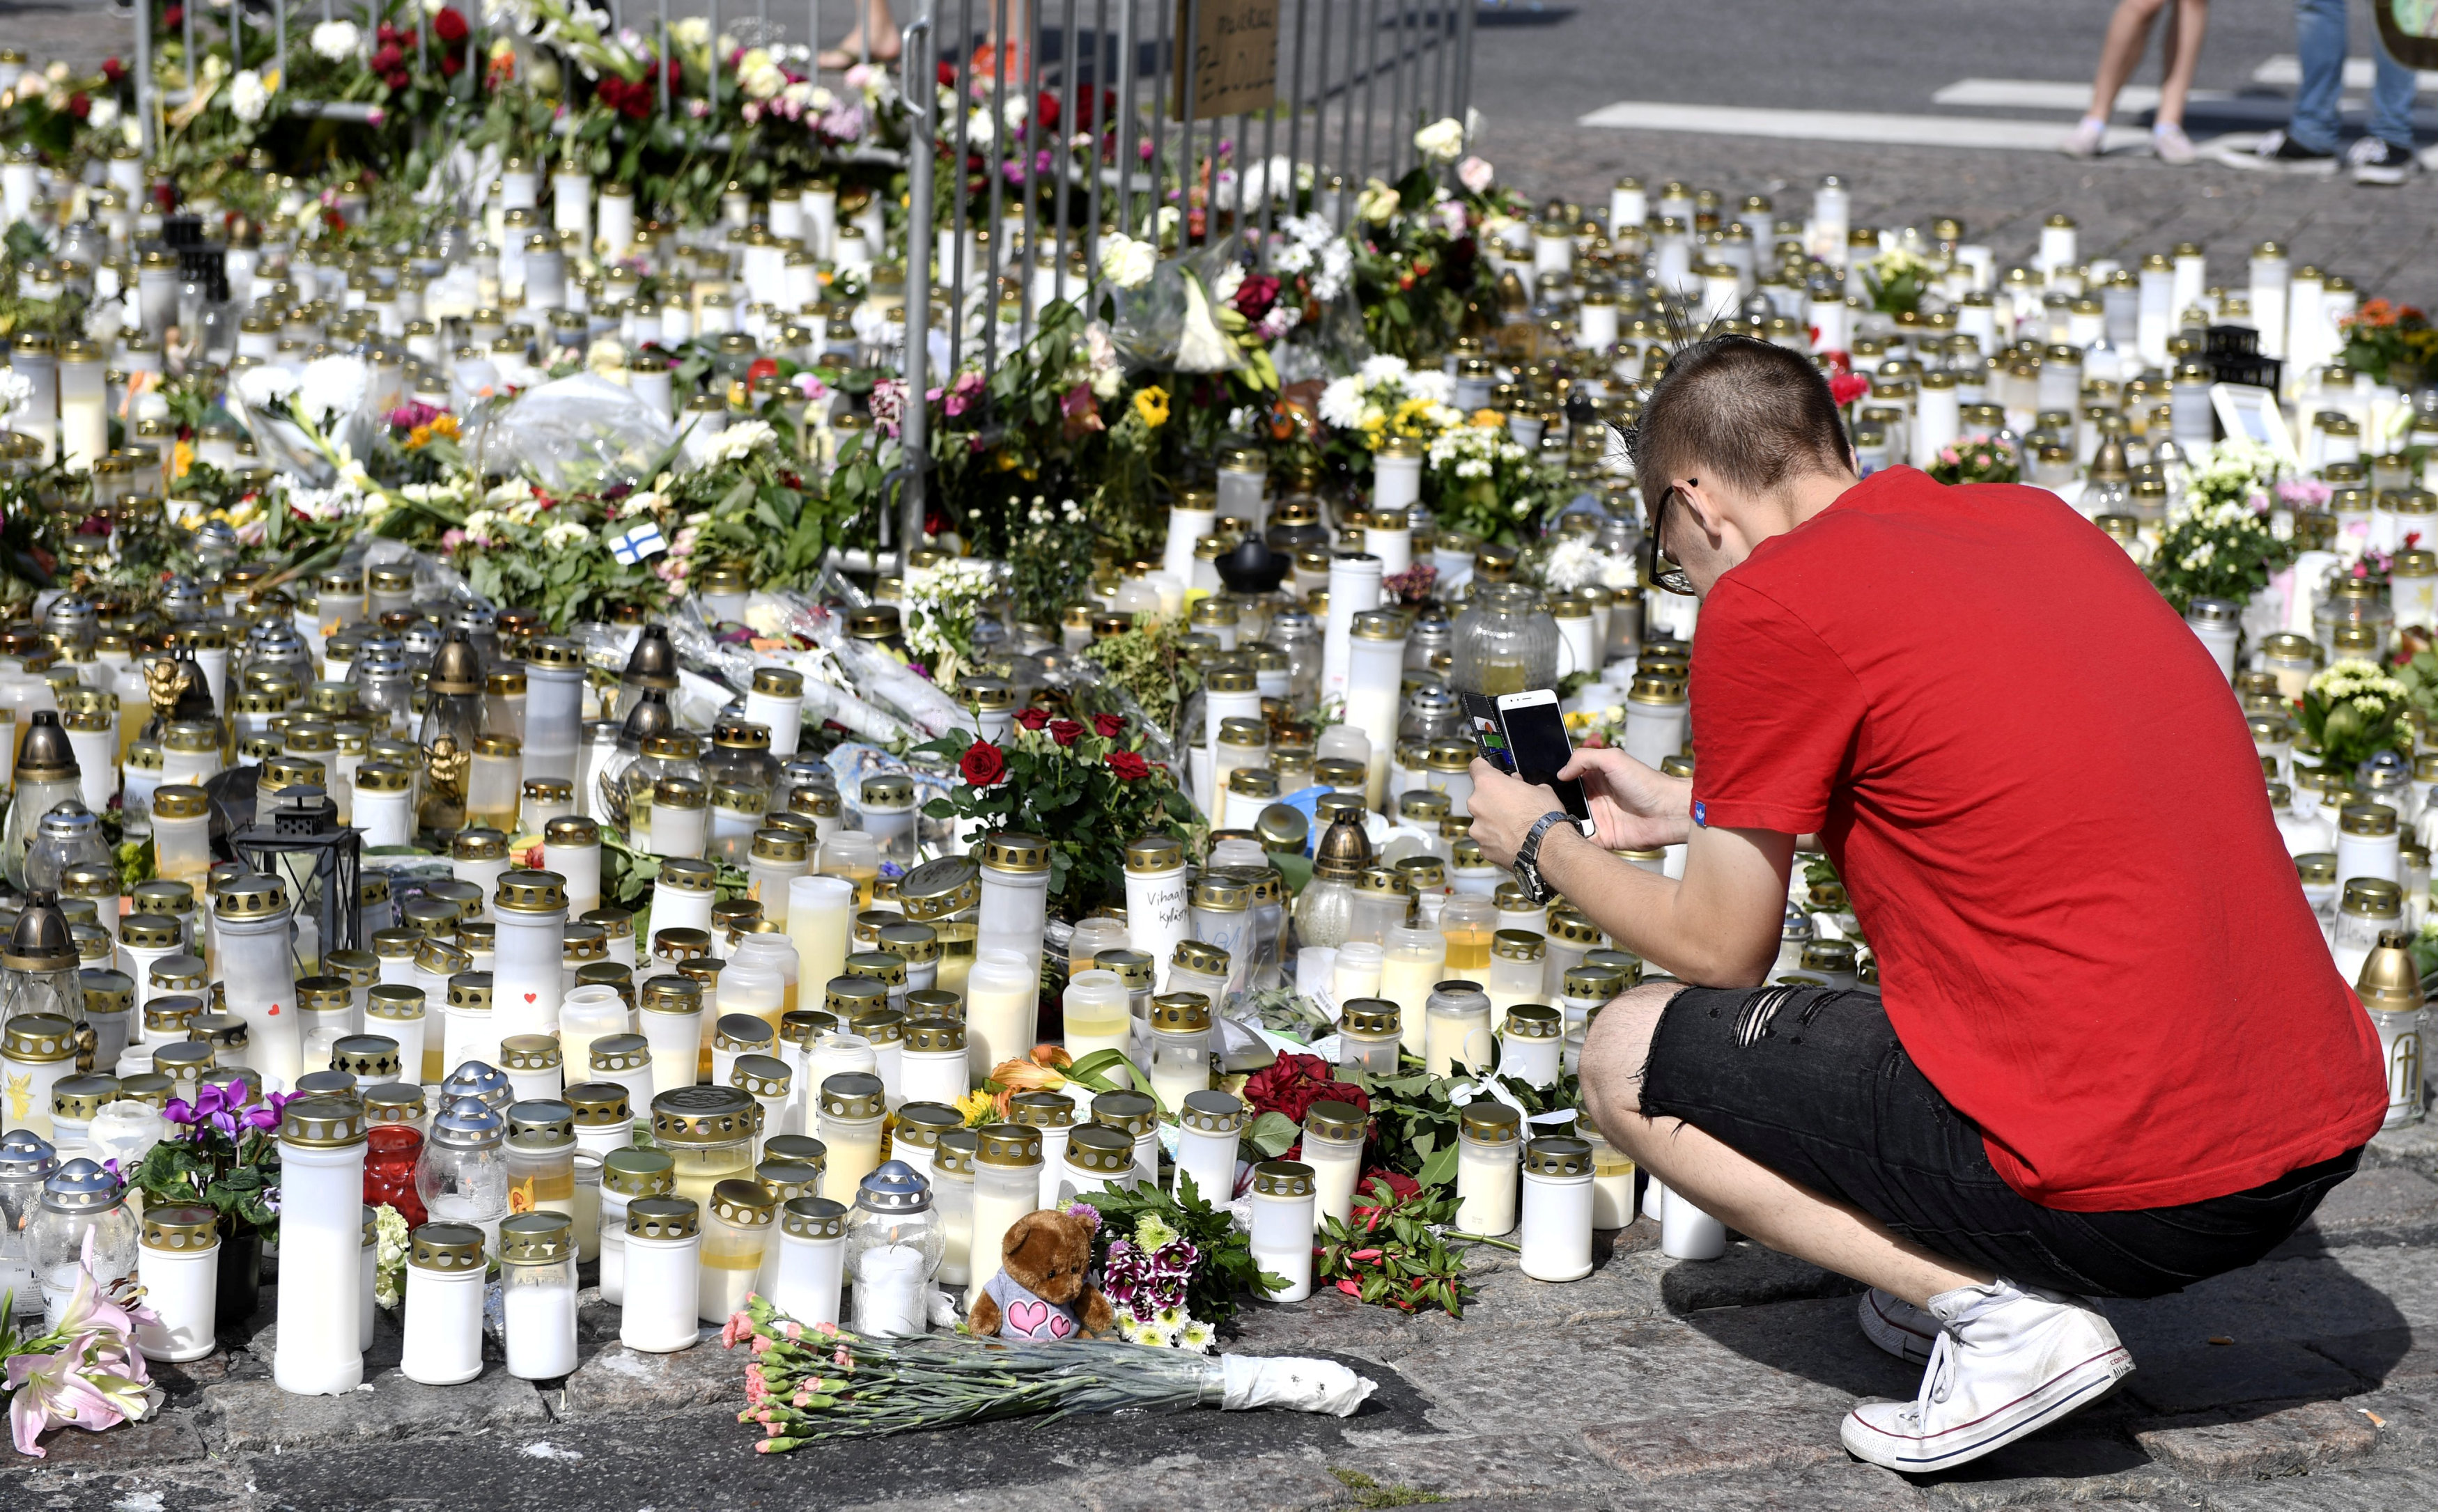 Mourners bring memorial cards, candles and flowers to the Turku Market Square, in Turku, Finland on August 20, 2017. (Lehtikuva/Vesa Moilanen/via REUTERS)